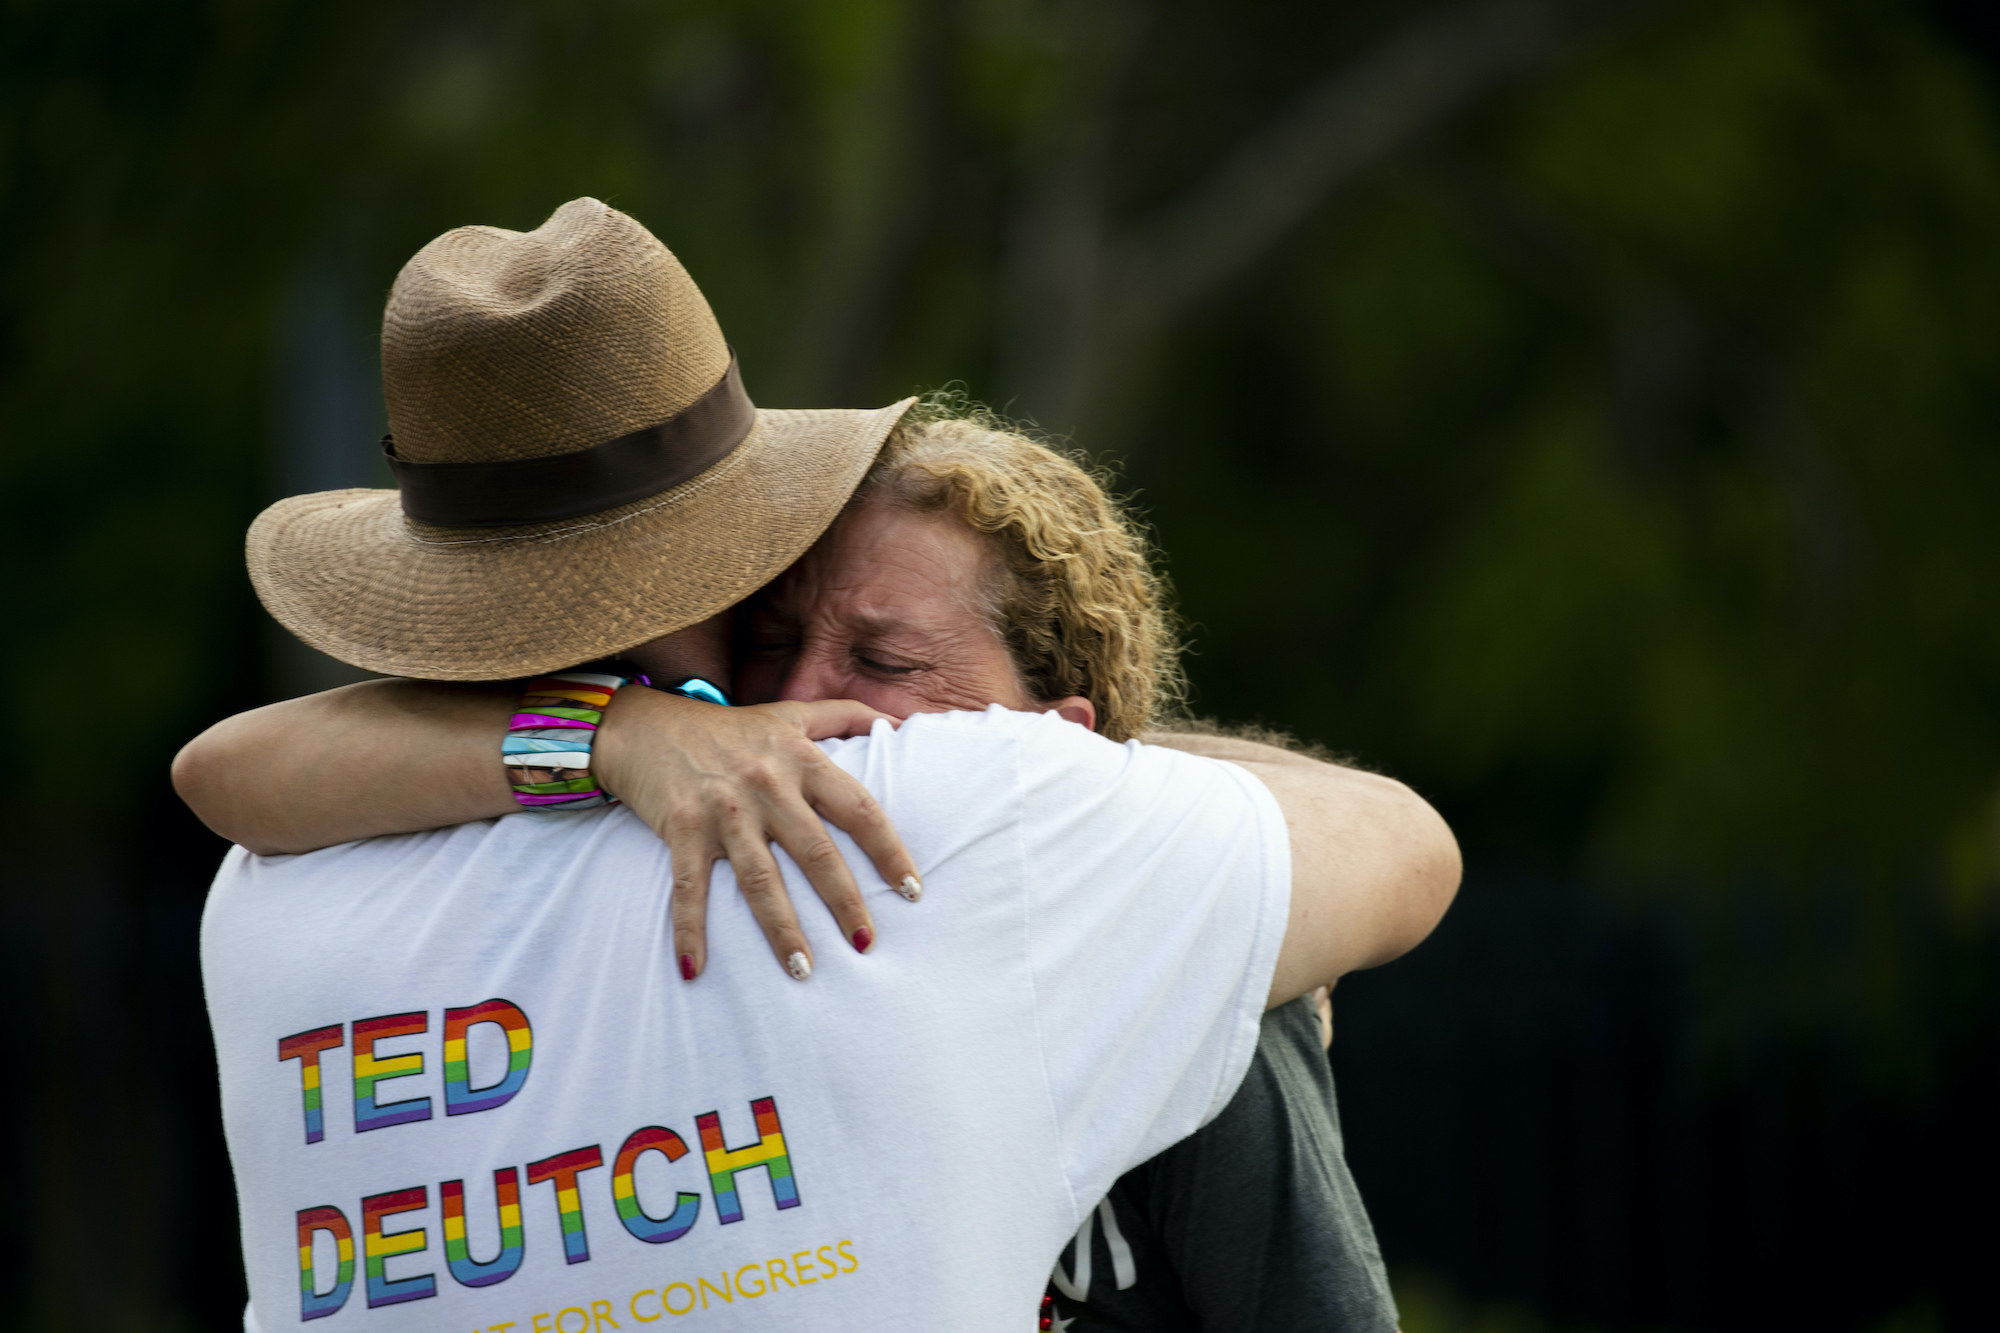 Debbie Wasserman Schultz is crying as she is hugged by another person